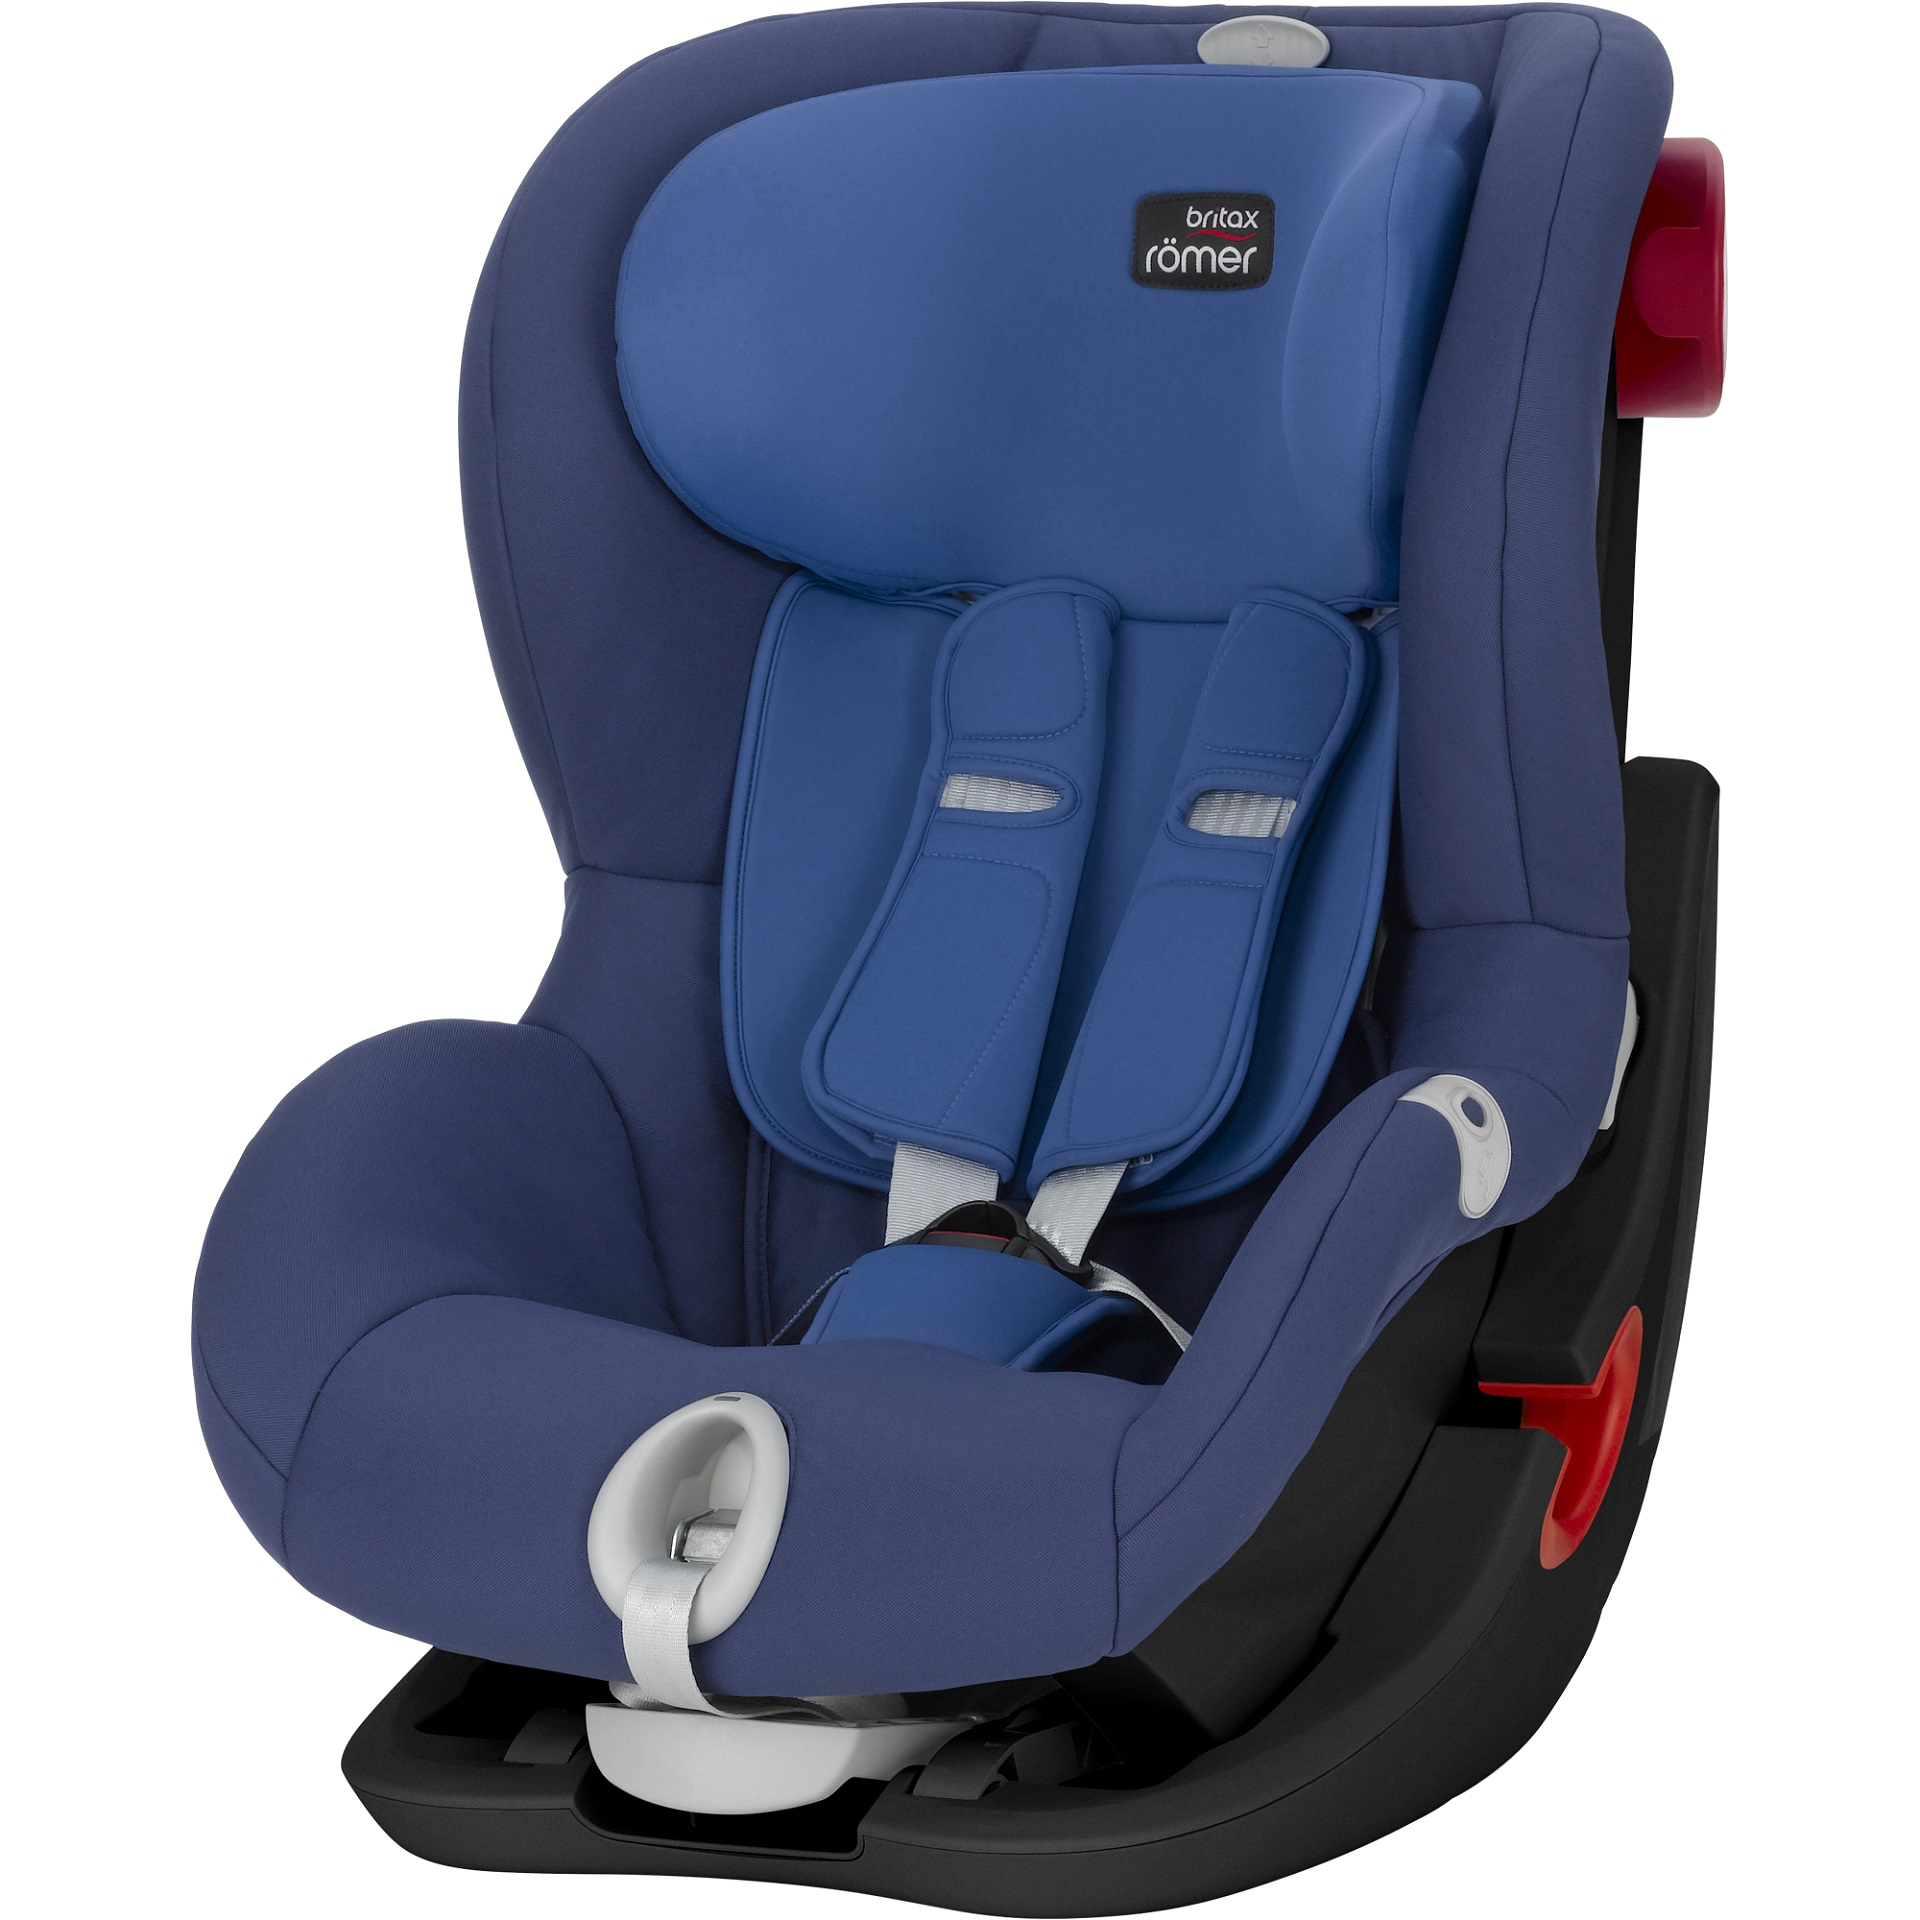 britax r mer car seat king ii ls black series 2017 ocean blue buy at kidsroom car seats. Black Bedroom Furniture Sets. Home Design Ideas